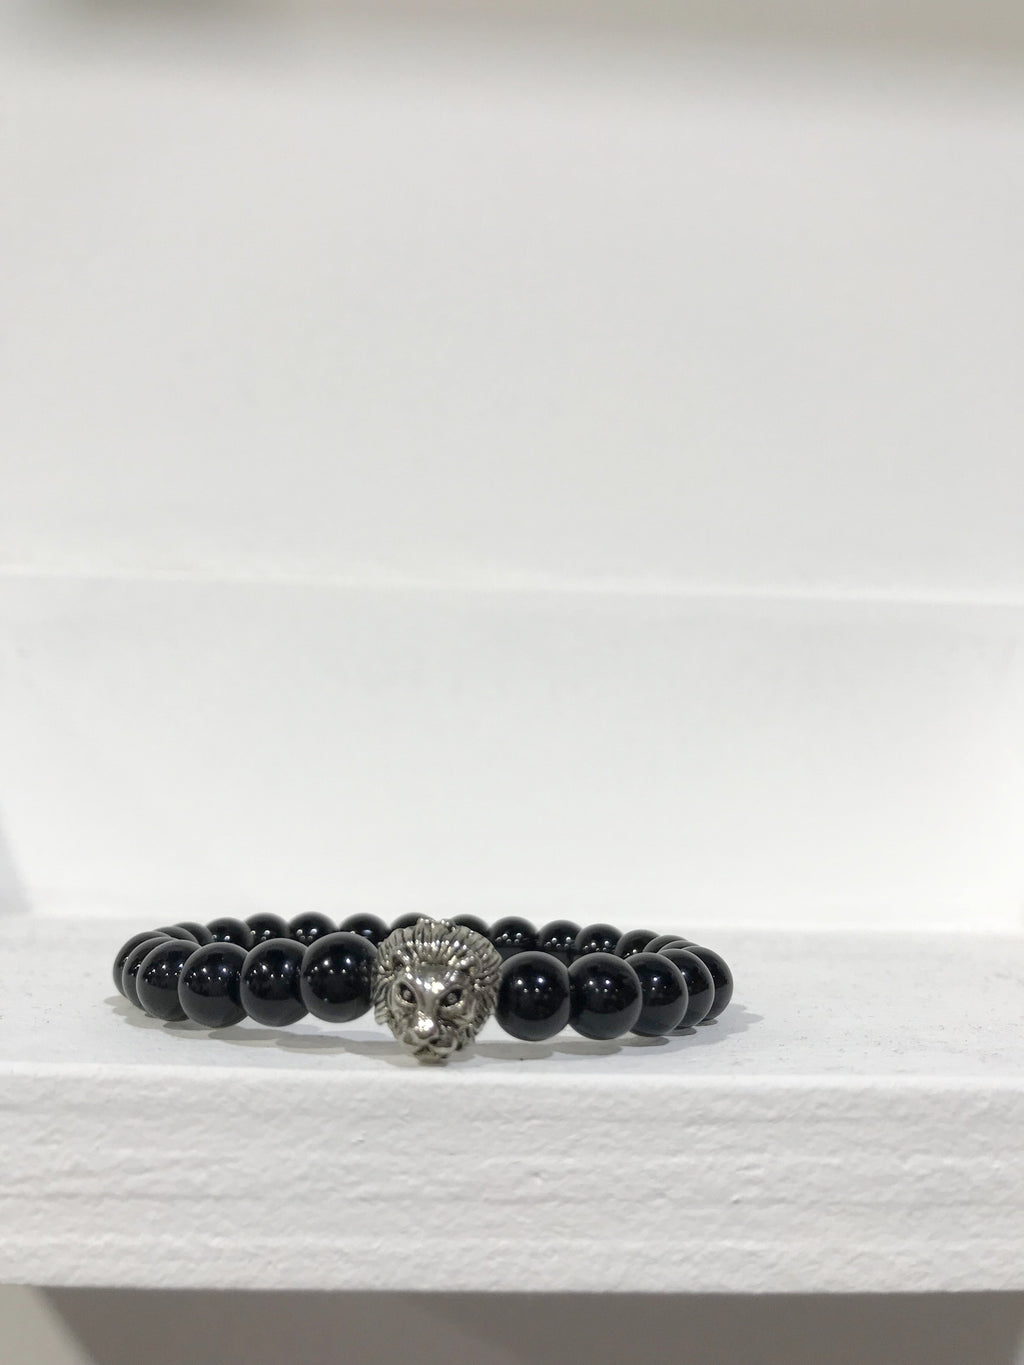 LION COLLEXION Mens Bracelet - Onyx